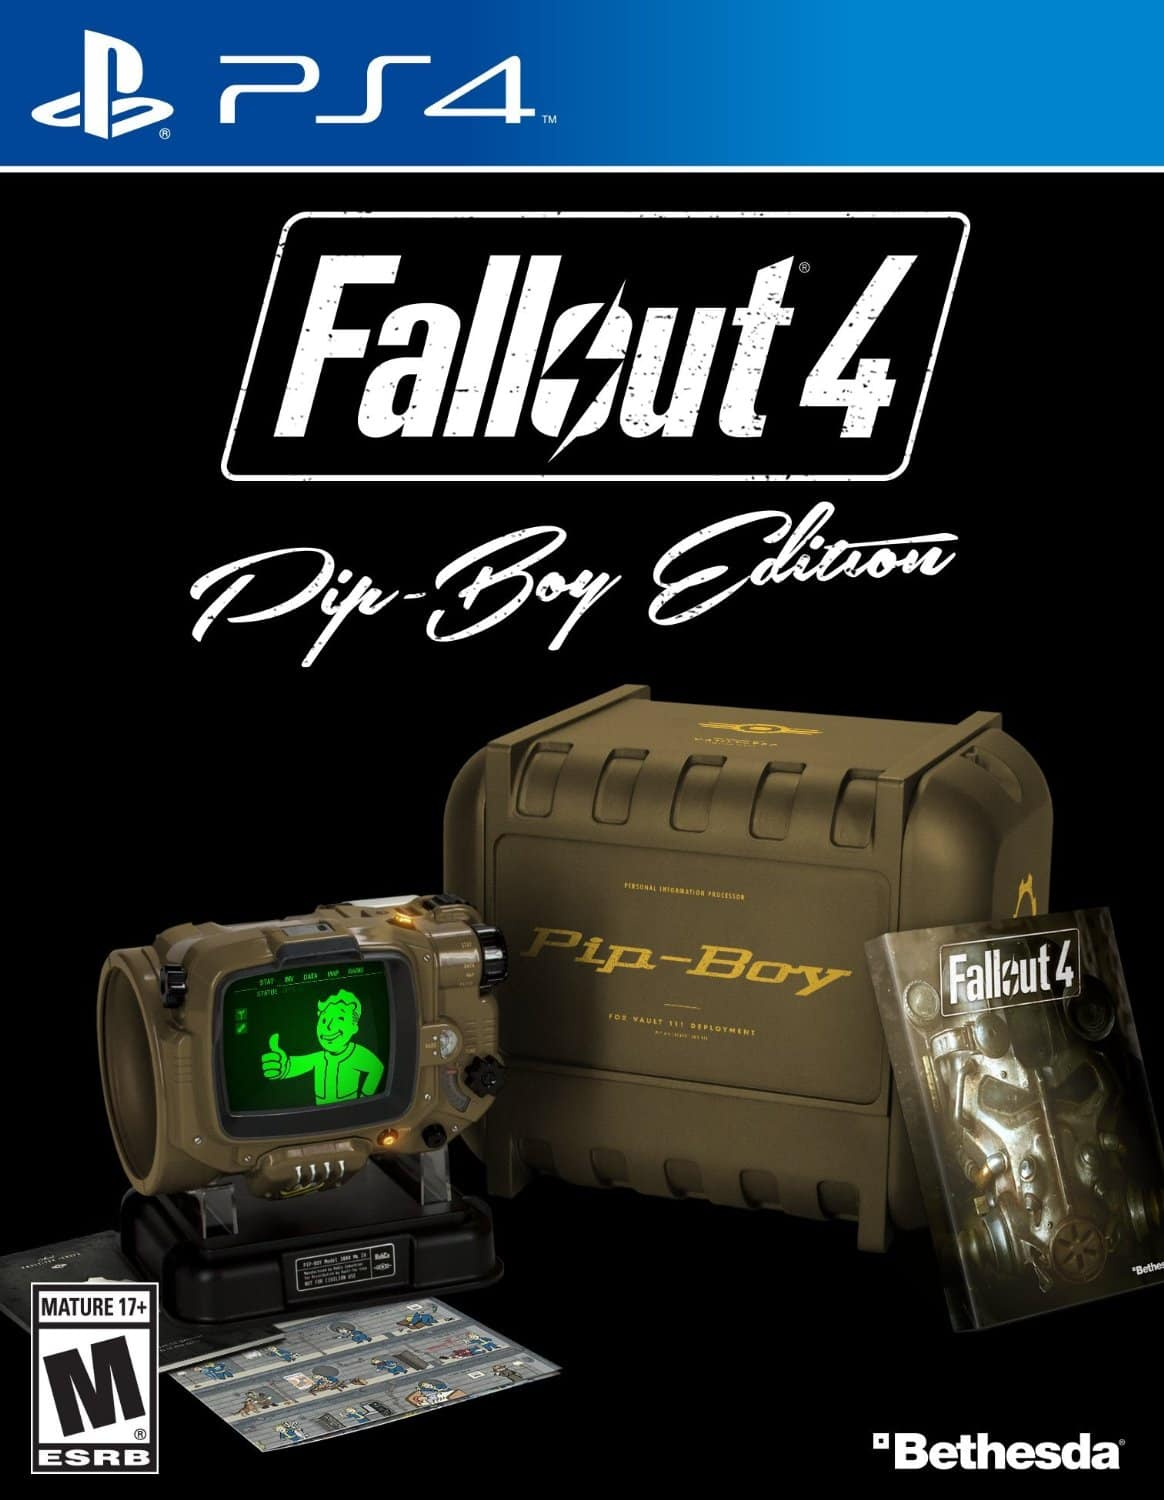 Amazon - FALLOUT 4 PIP-BOY EDITION XBOX ONE PS4 PC IN STOCK NOW $120